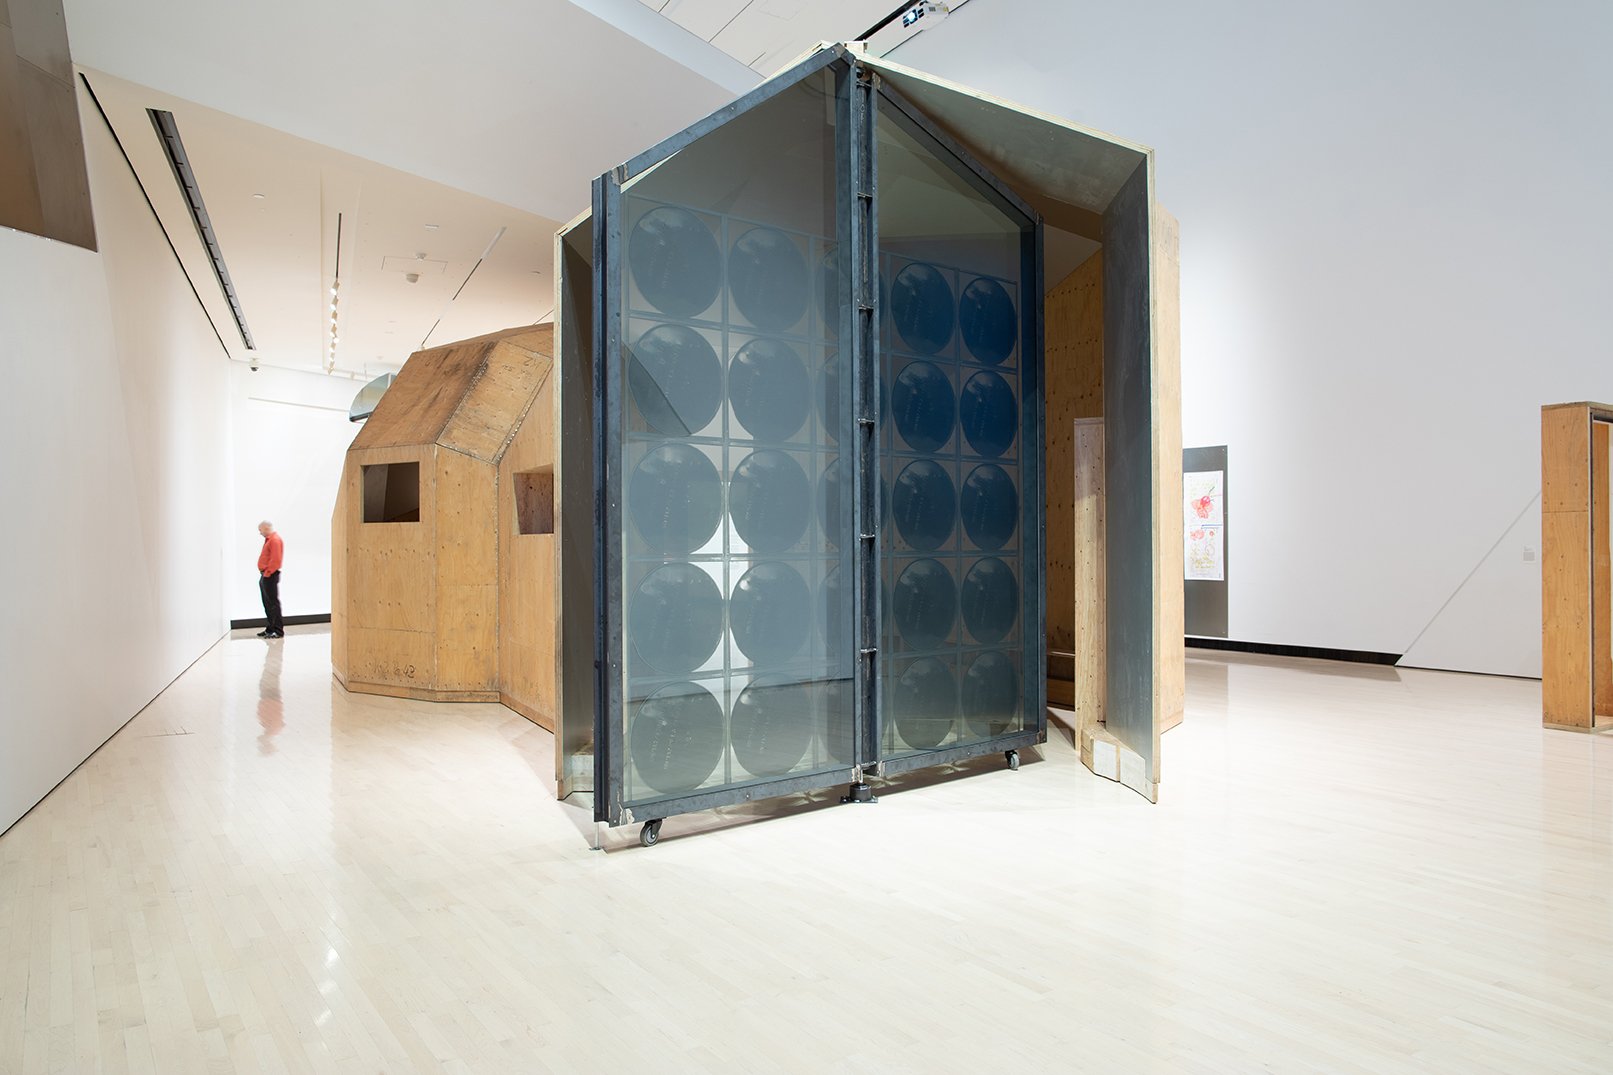 <i>Oscar Tuazon: Water School</i>, installation view at the Eli and Edythe Broad Art Museum at Michigan State University, 2019. Photo: Eat Pomegranate Photography